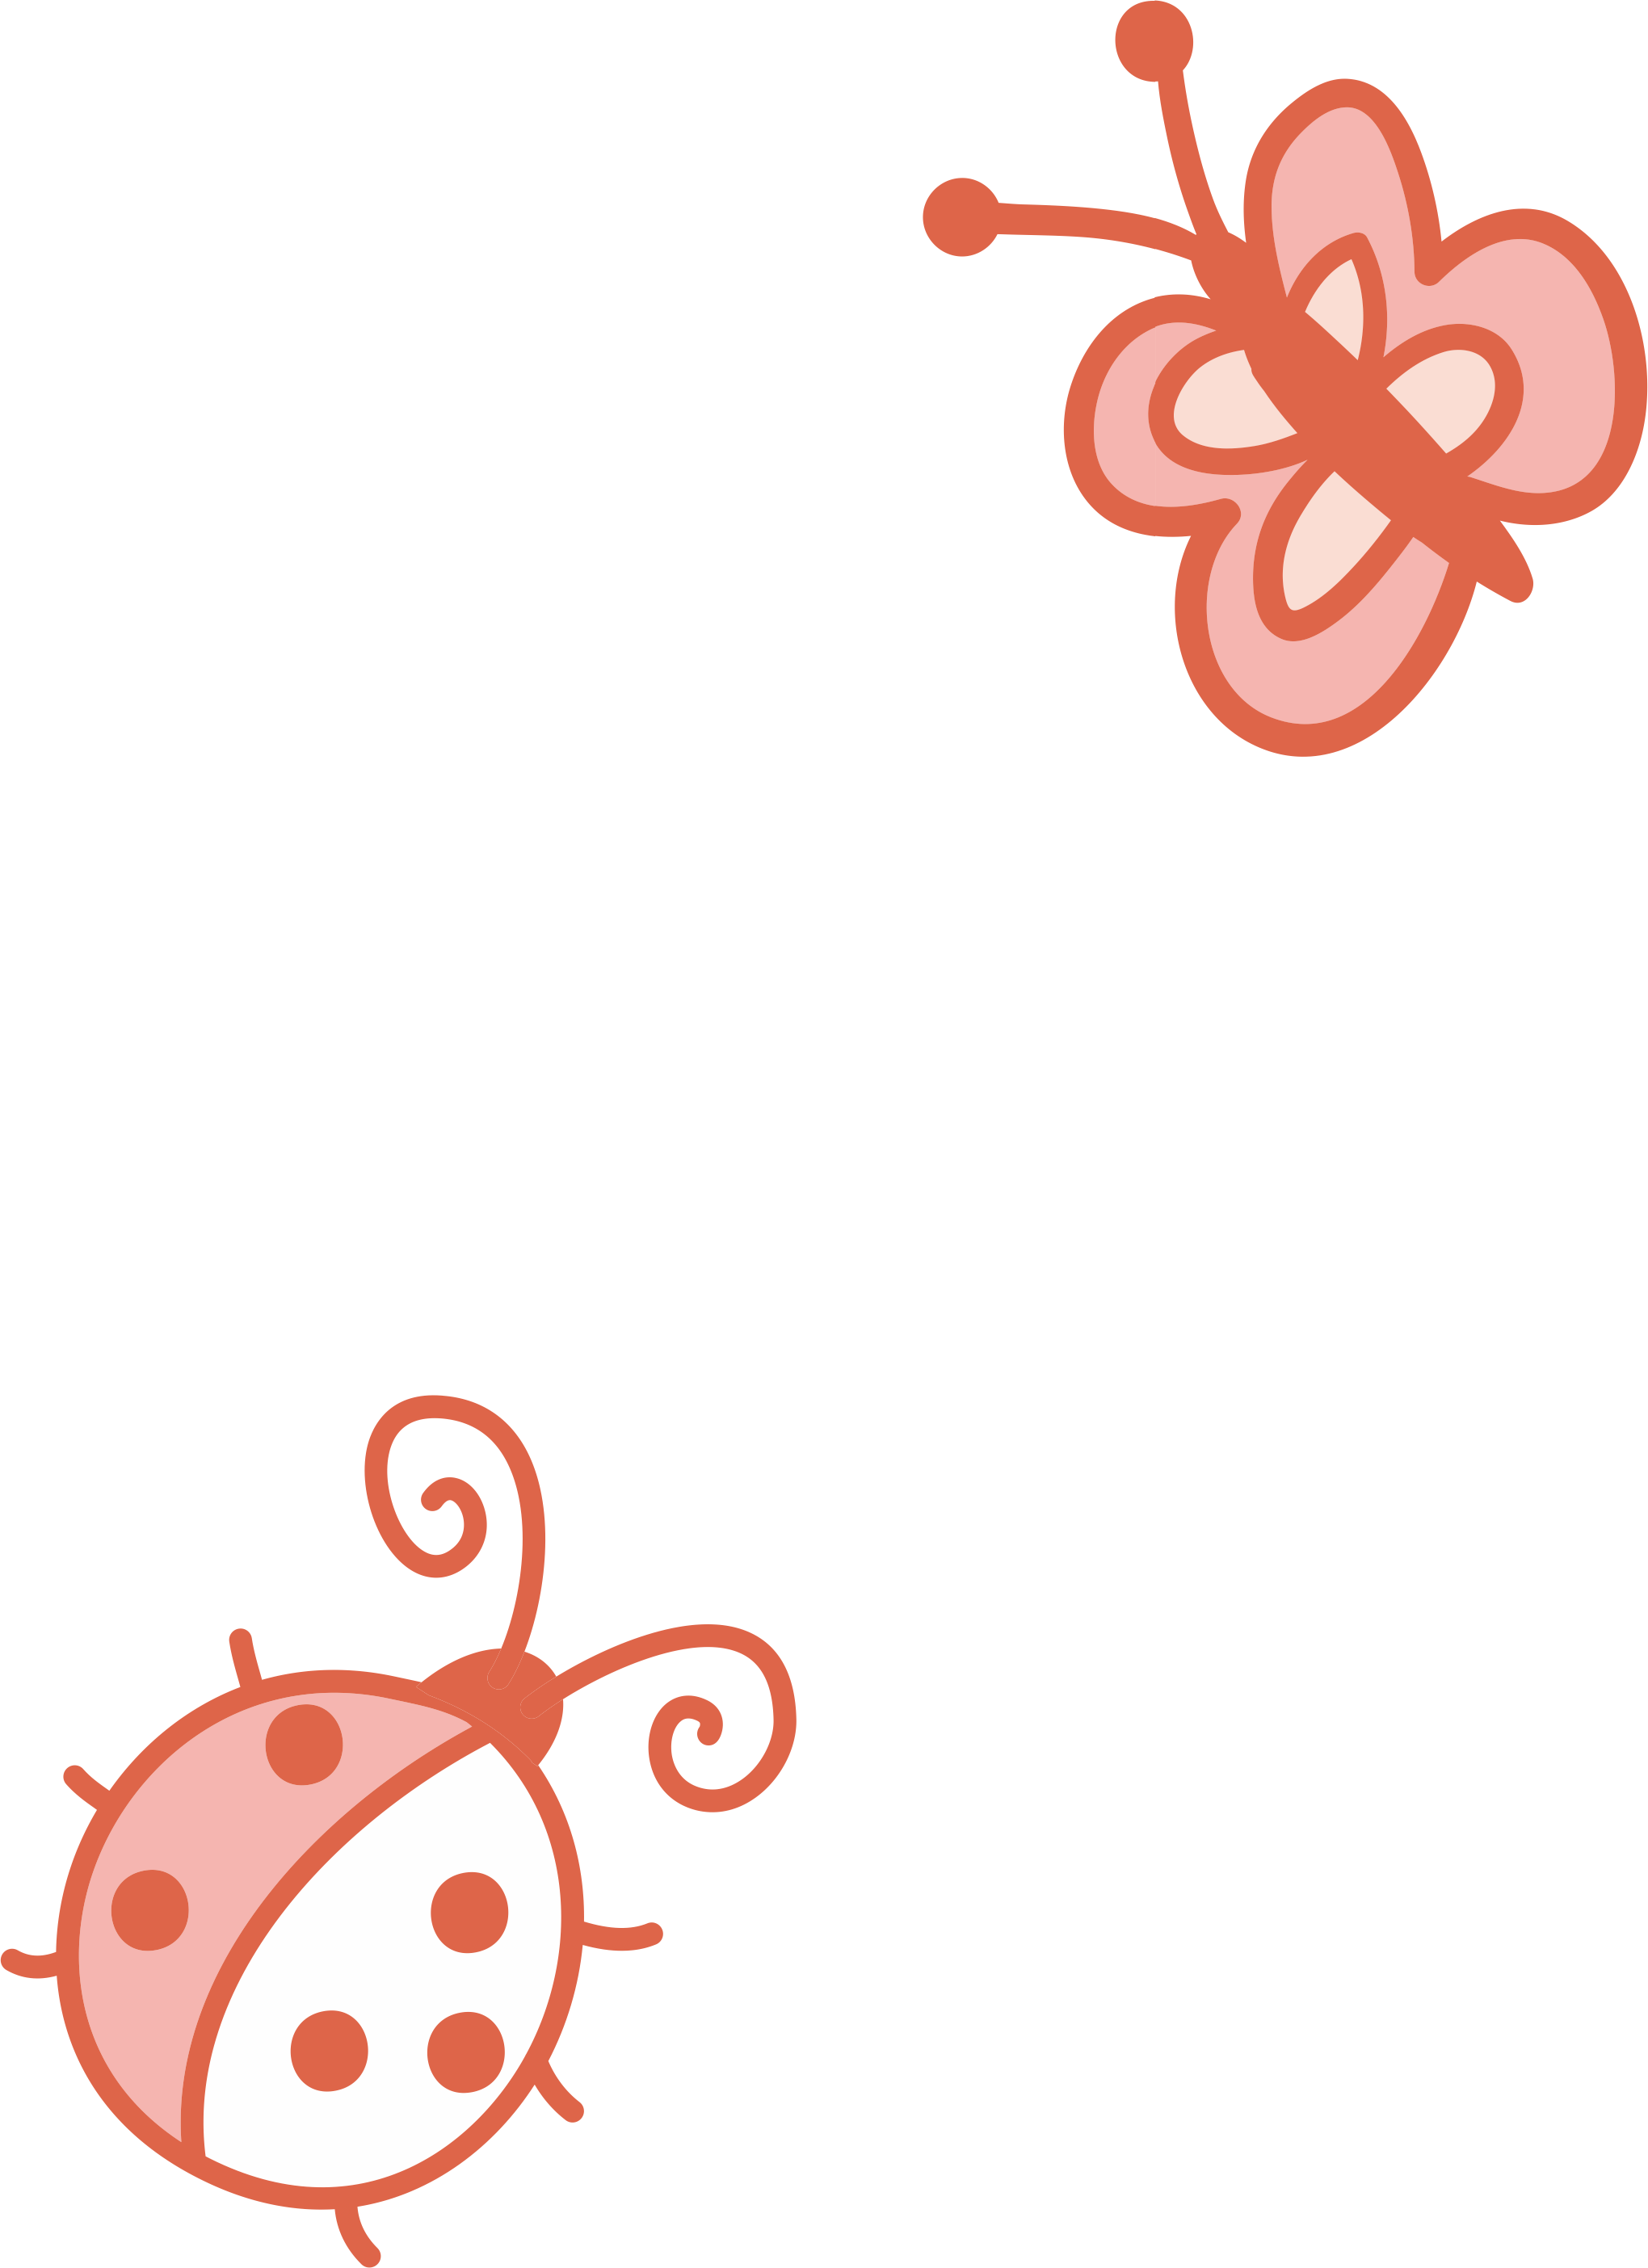 Cartoon drawing clip art. Ladybugs clipart butterfly